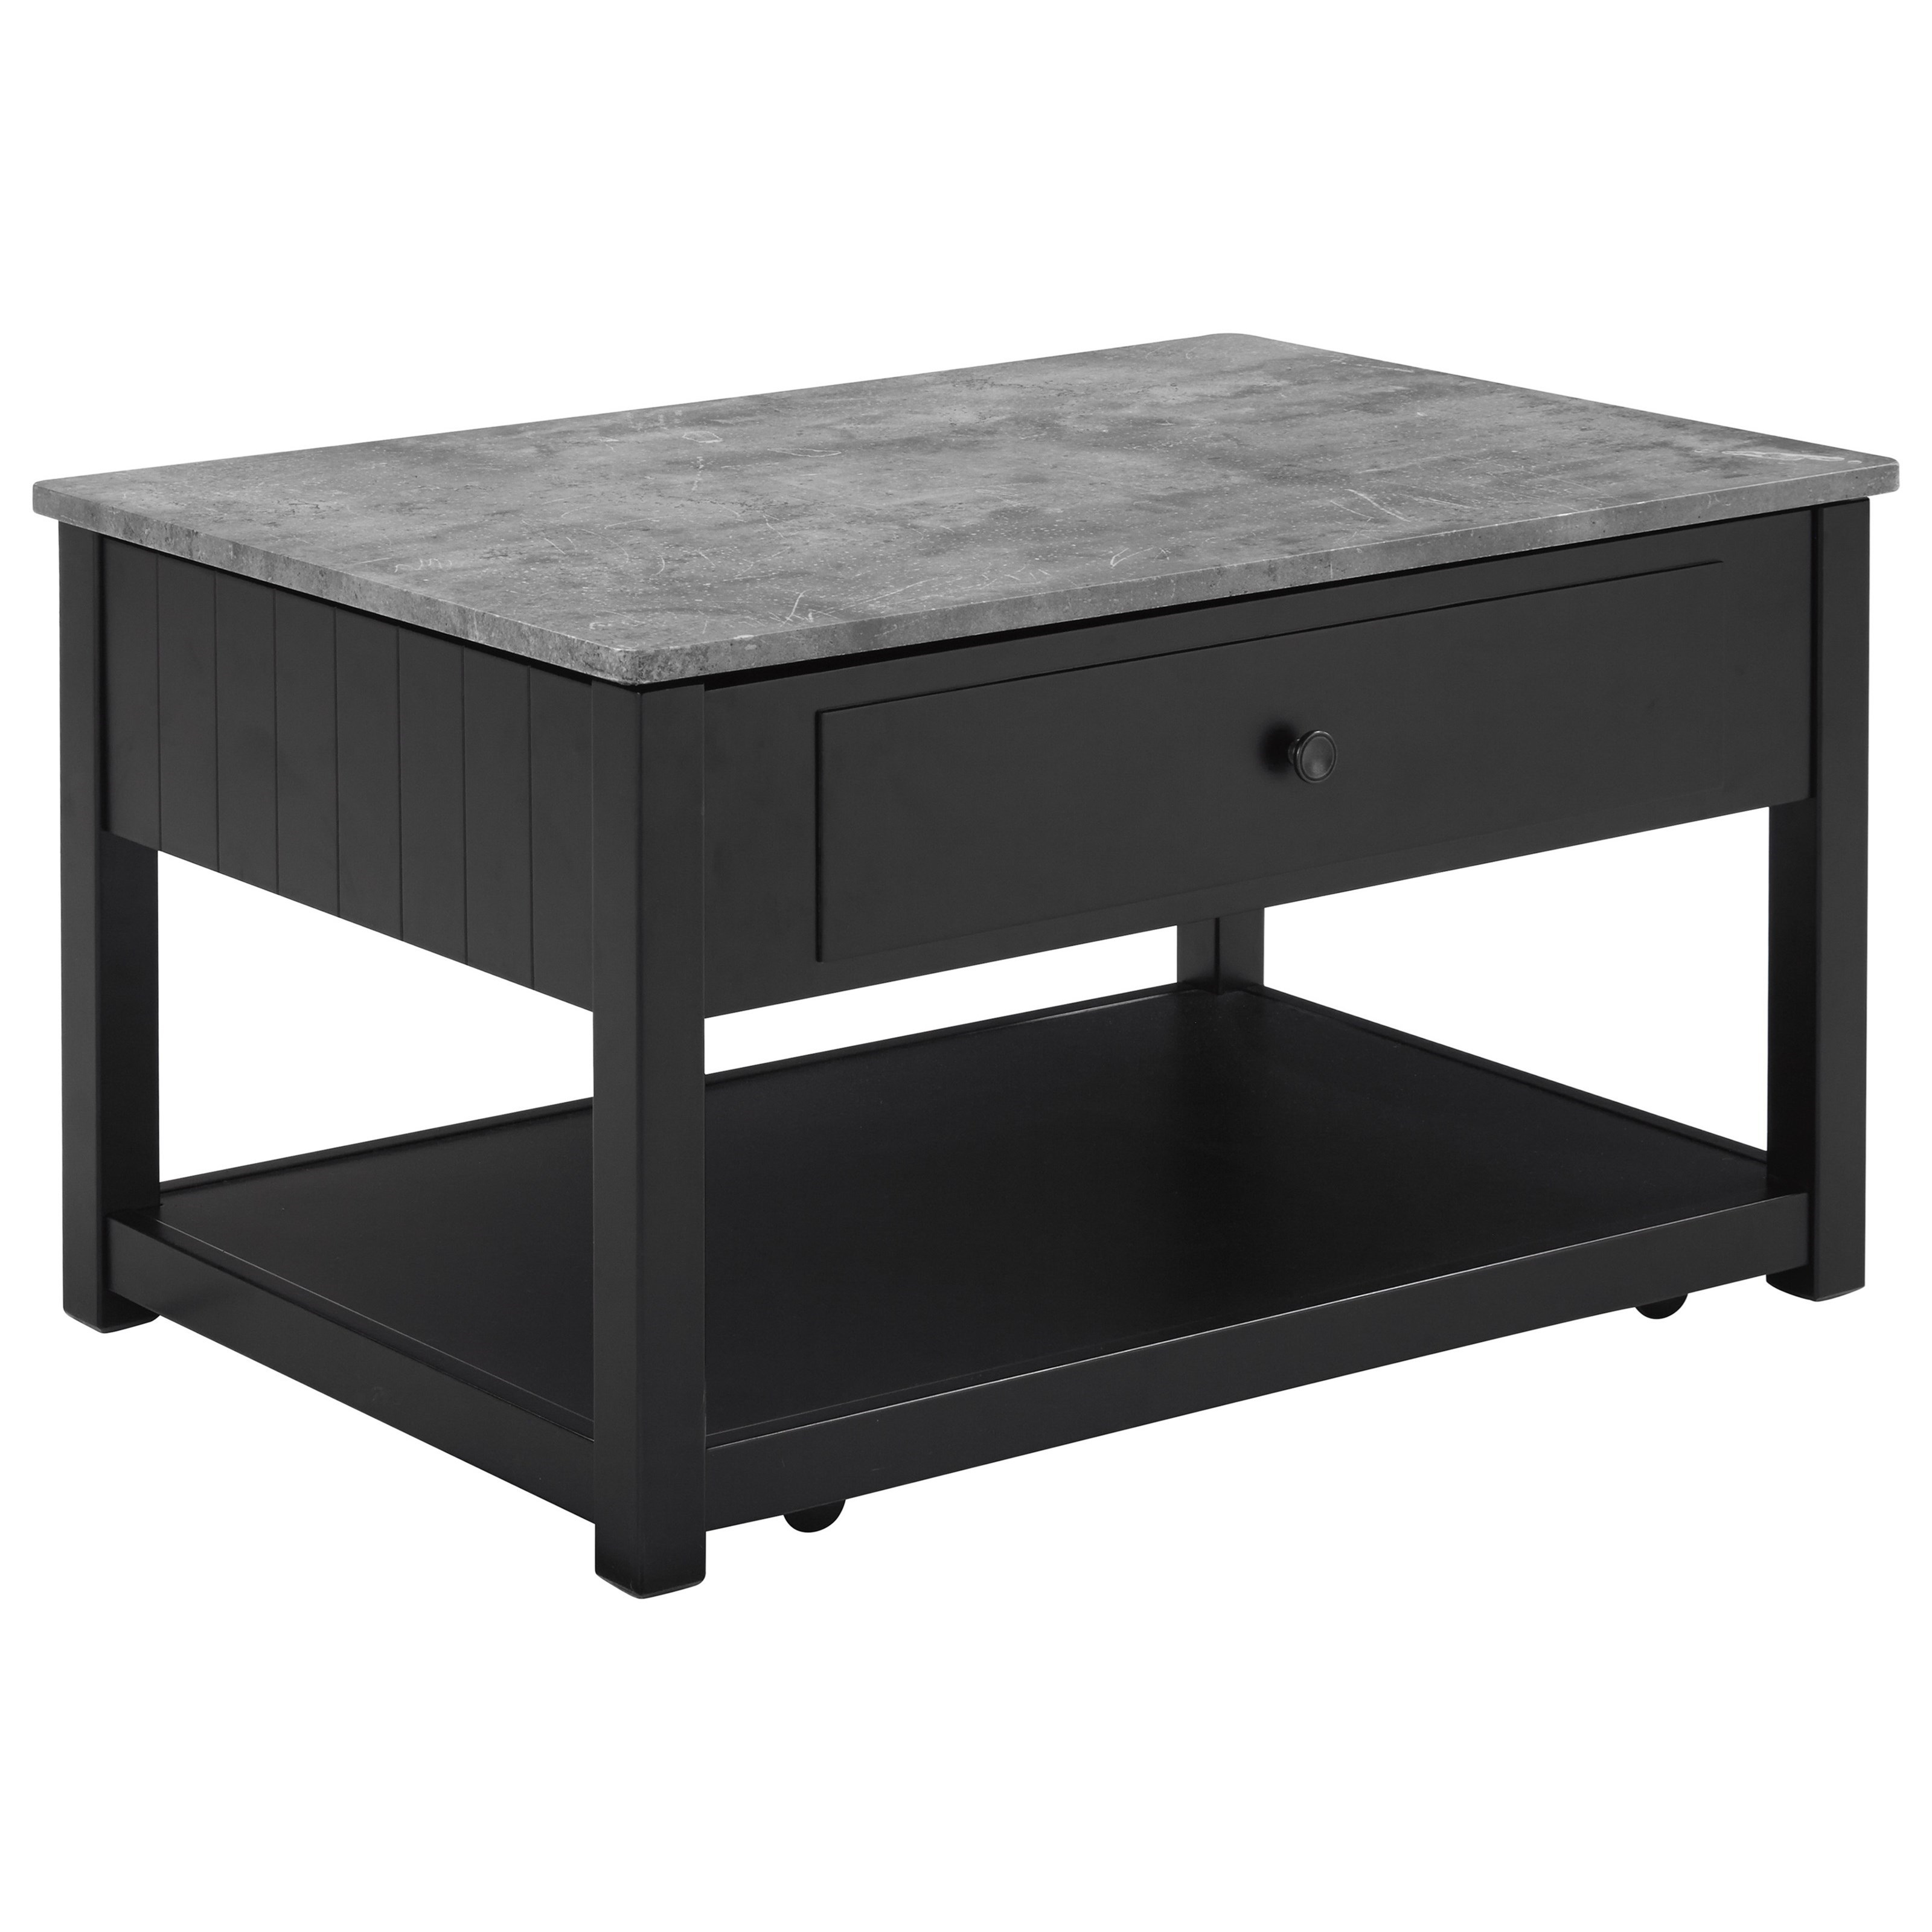 Vendor 3 Ezmonei 0181021 Lift Top Cocktail Table With Faux Marble Top Becker Furniture Cocktail Coffee Tables